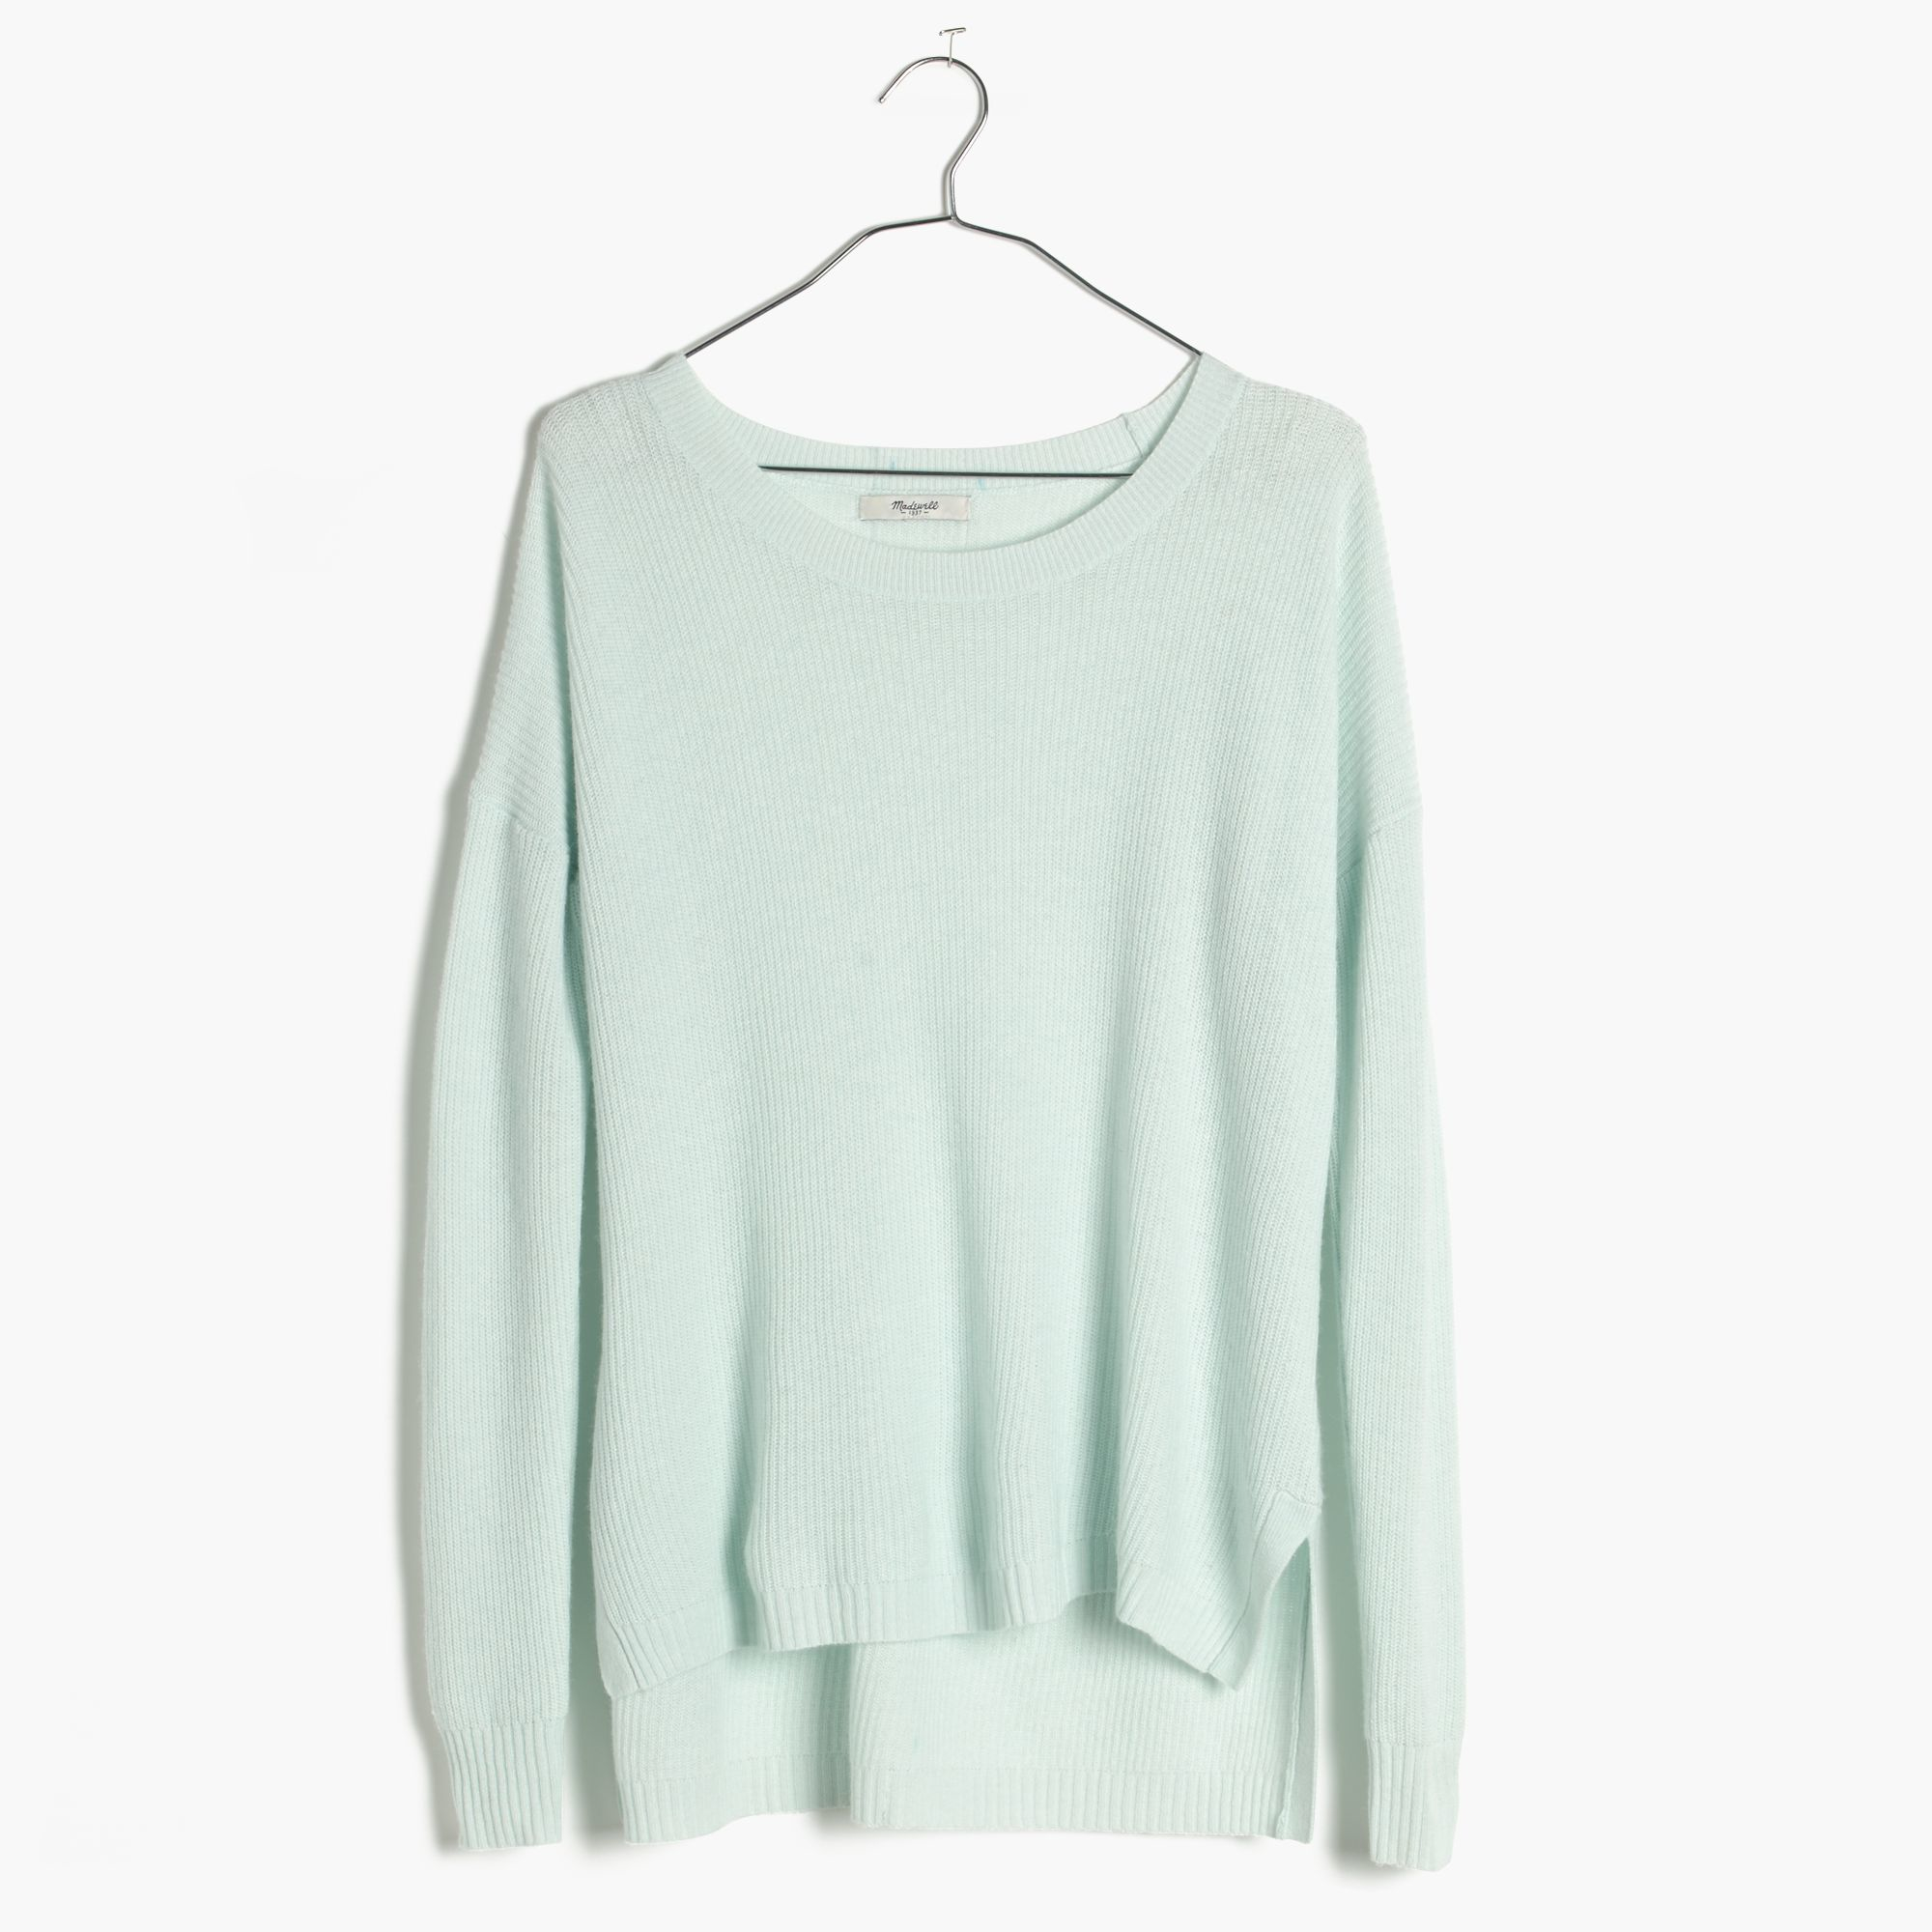 Madewell Warmlight Pullover Sweater in Blue | Lyst